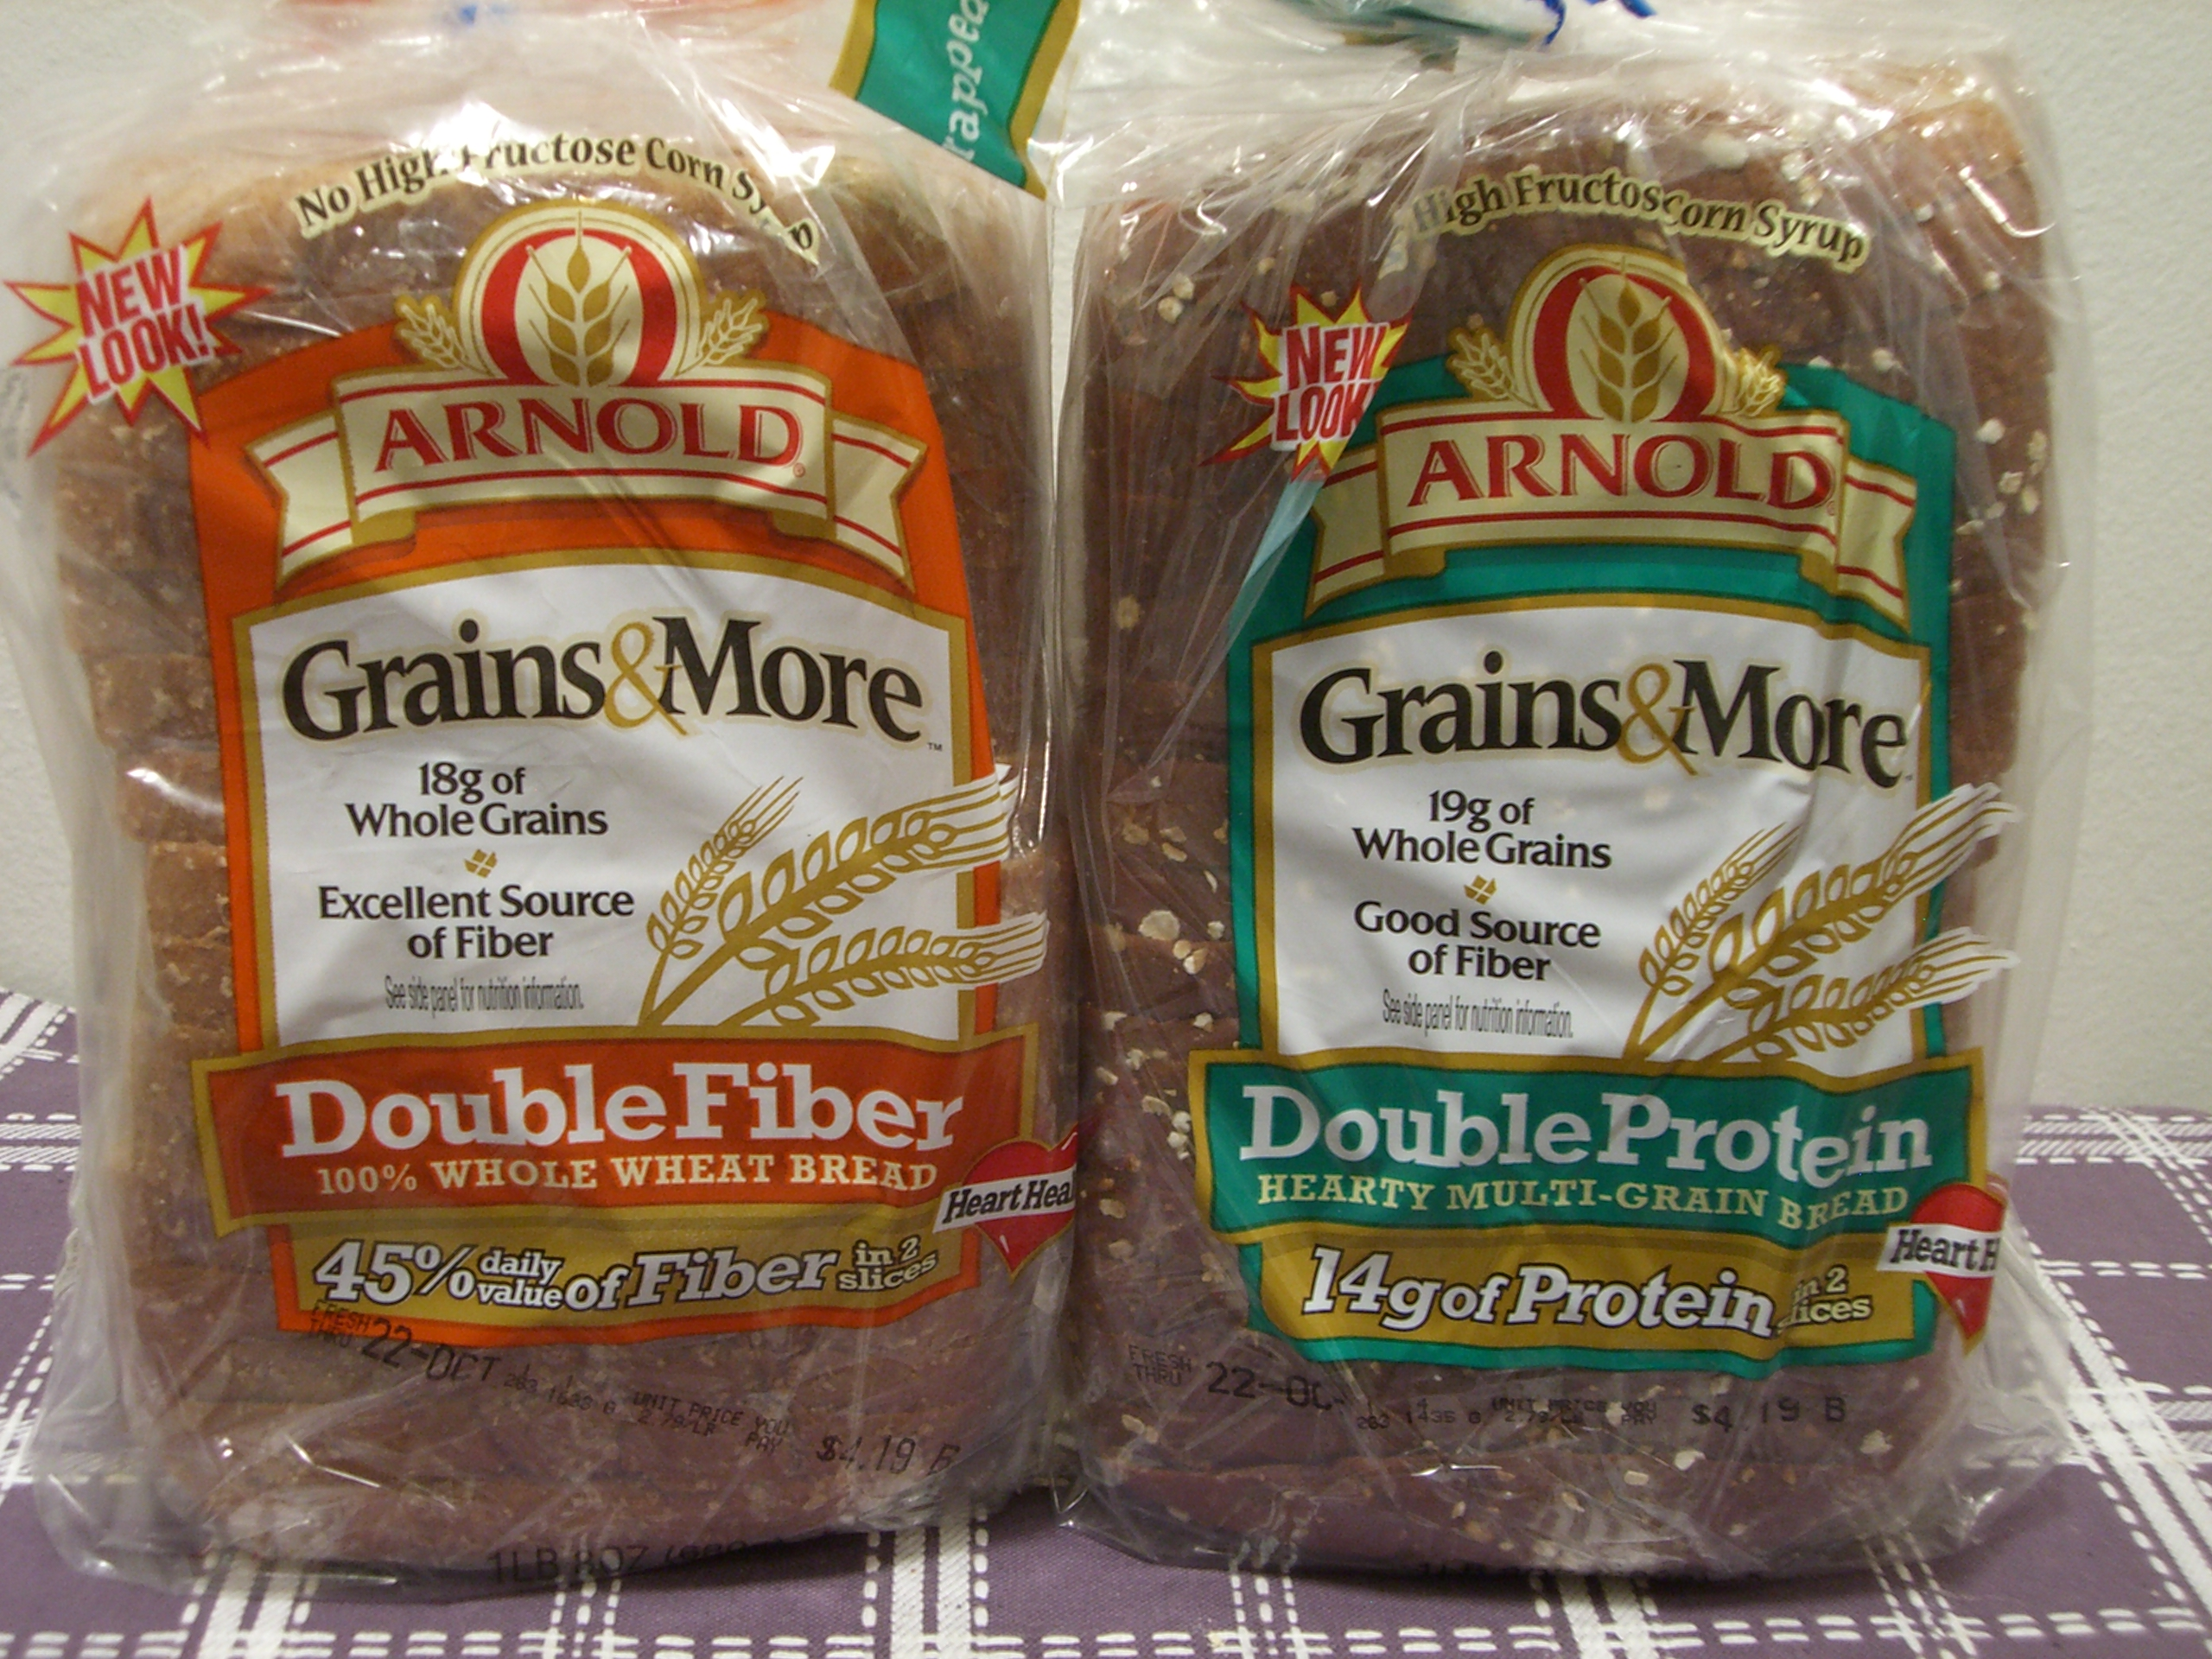 I'm sure that many of you have seen these breads around the blogosphere, but I thought I'd chime in and give my $.02 ...